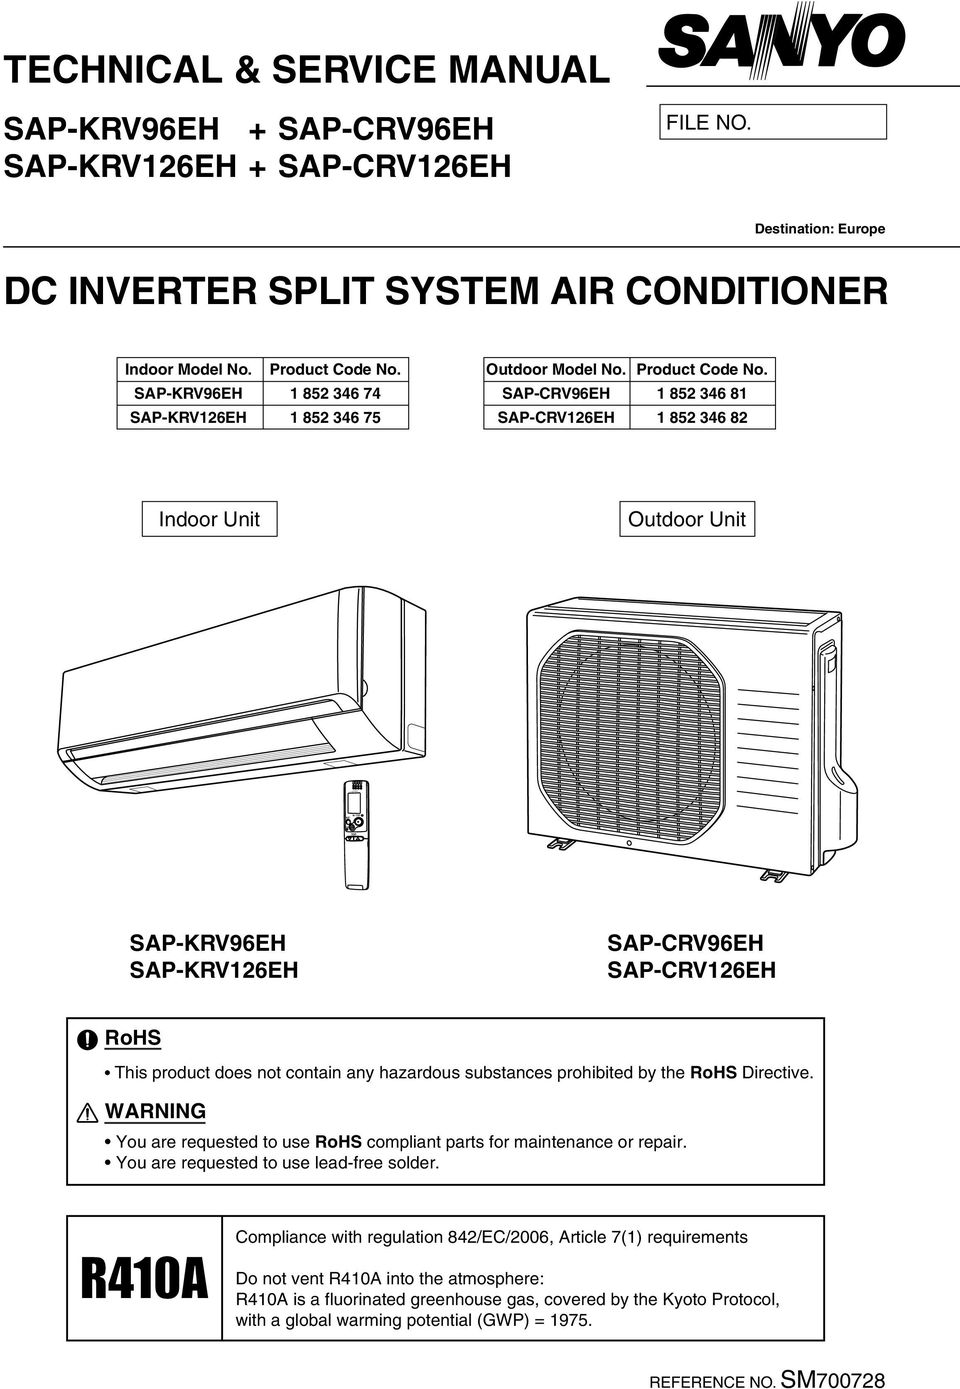 1 852 346 81 1 852 346 82 Indoor Unit Outdoor Unit SAP-KRV96EH SAP-KRV126EH SAP-CRV96EH SAP-CRV126EH RoHS This product does not contain any hazardous substances prohibited by the RoHS Directive.